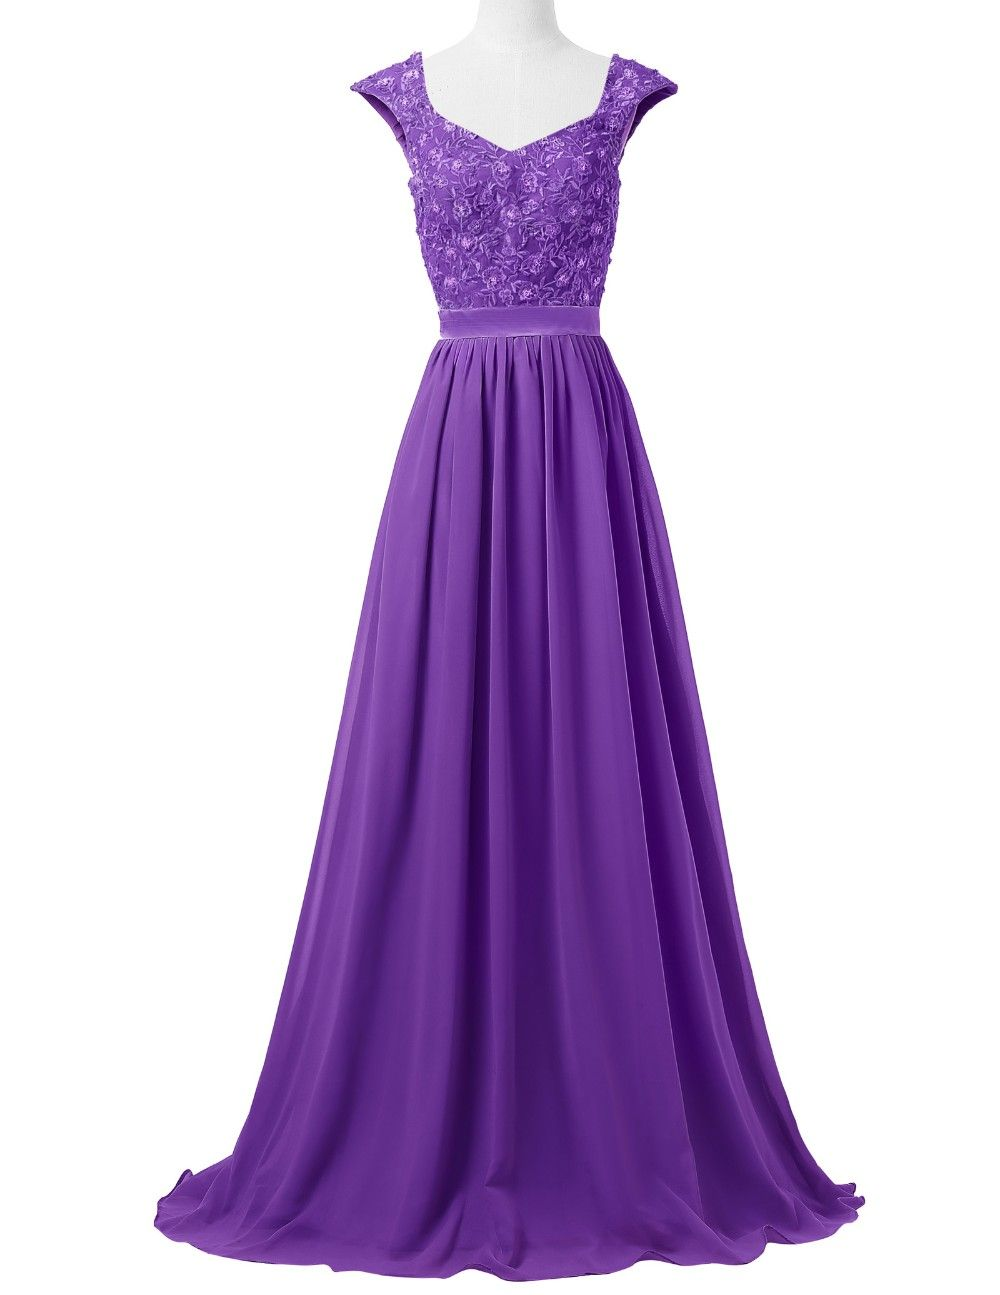 Sleeveless Lace Chiffon Long Formal Bridesmaid Dress - Uniqistic.com ...